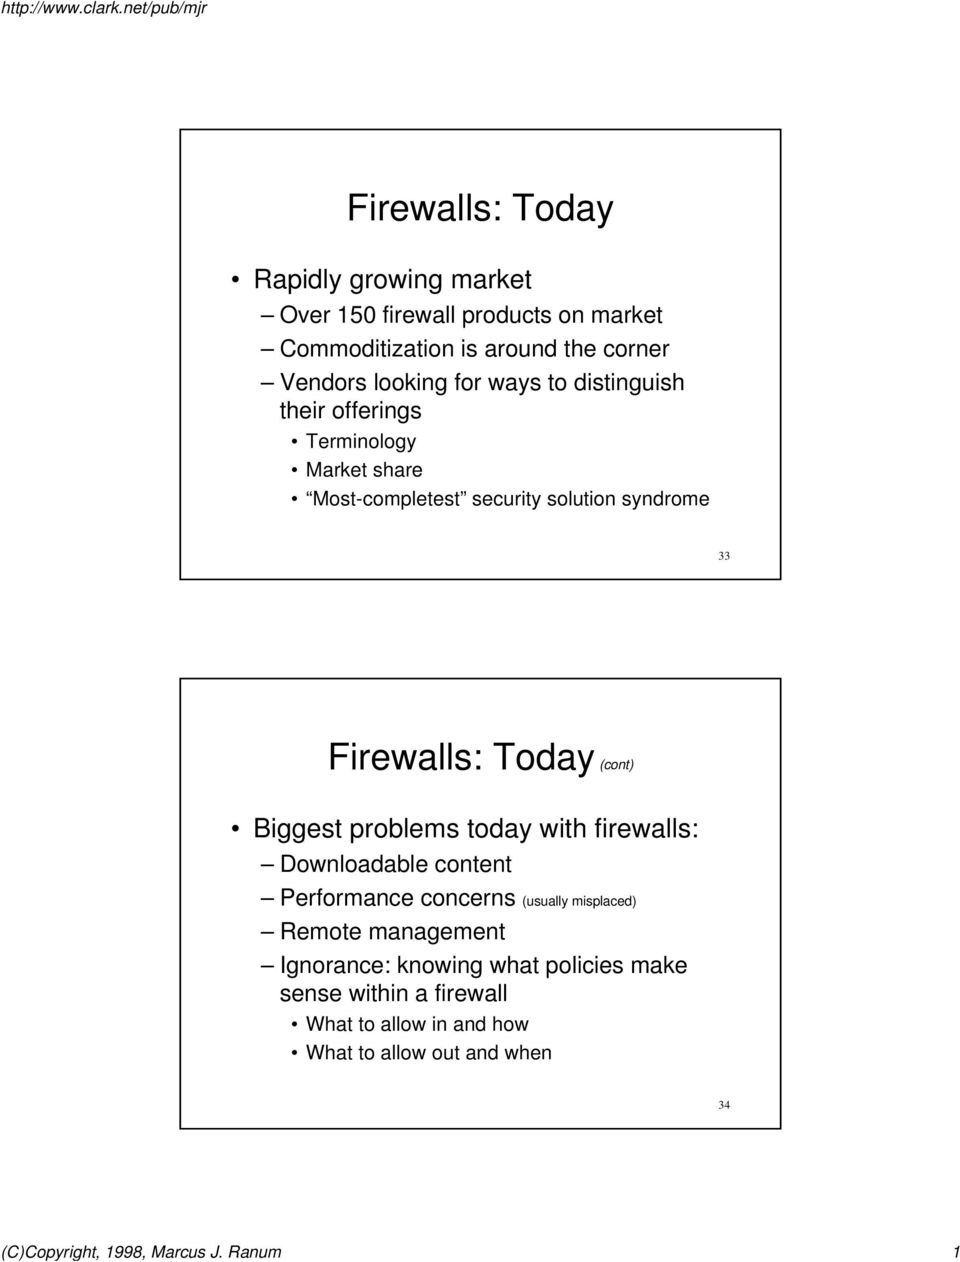 Biggest problems today with firewalls: Downloadable content Performance concerns (usually misplaced) Remote management Ignorance: